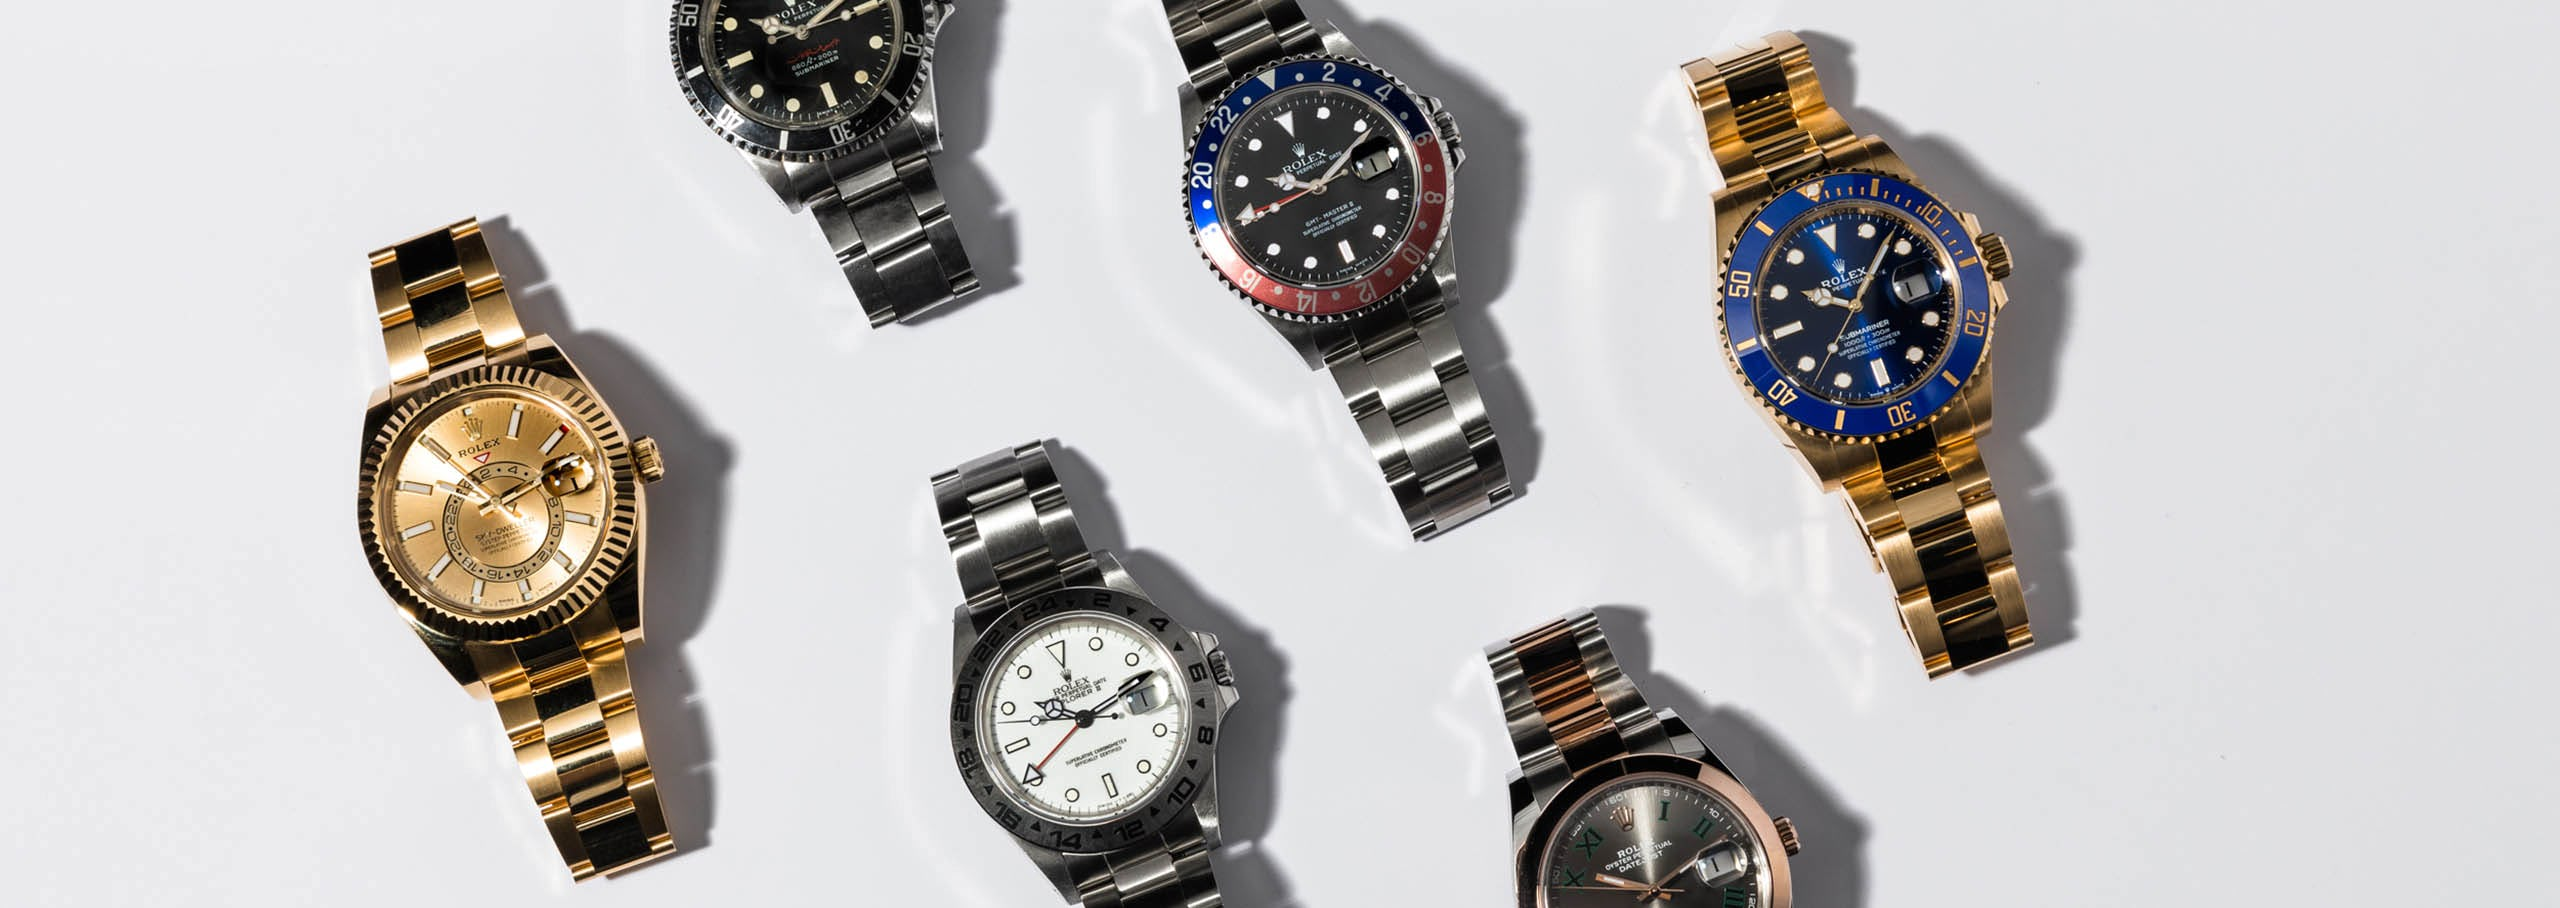 Rolex History: Everything You Need to Know About Rolex Watches